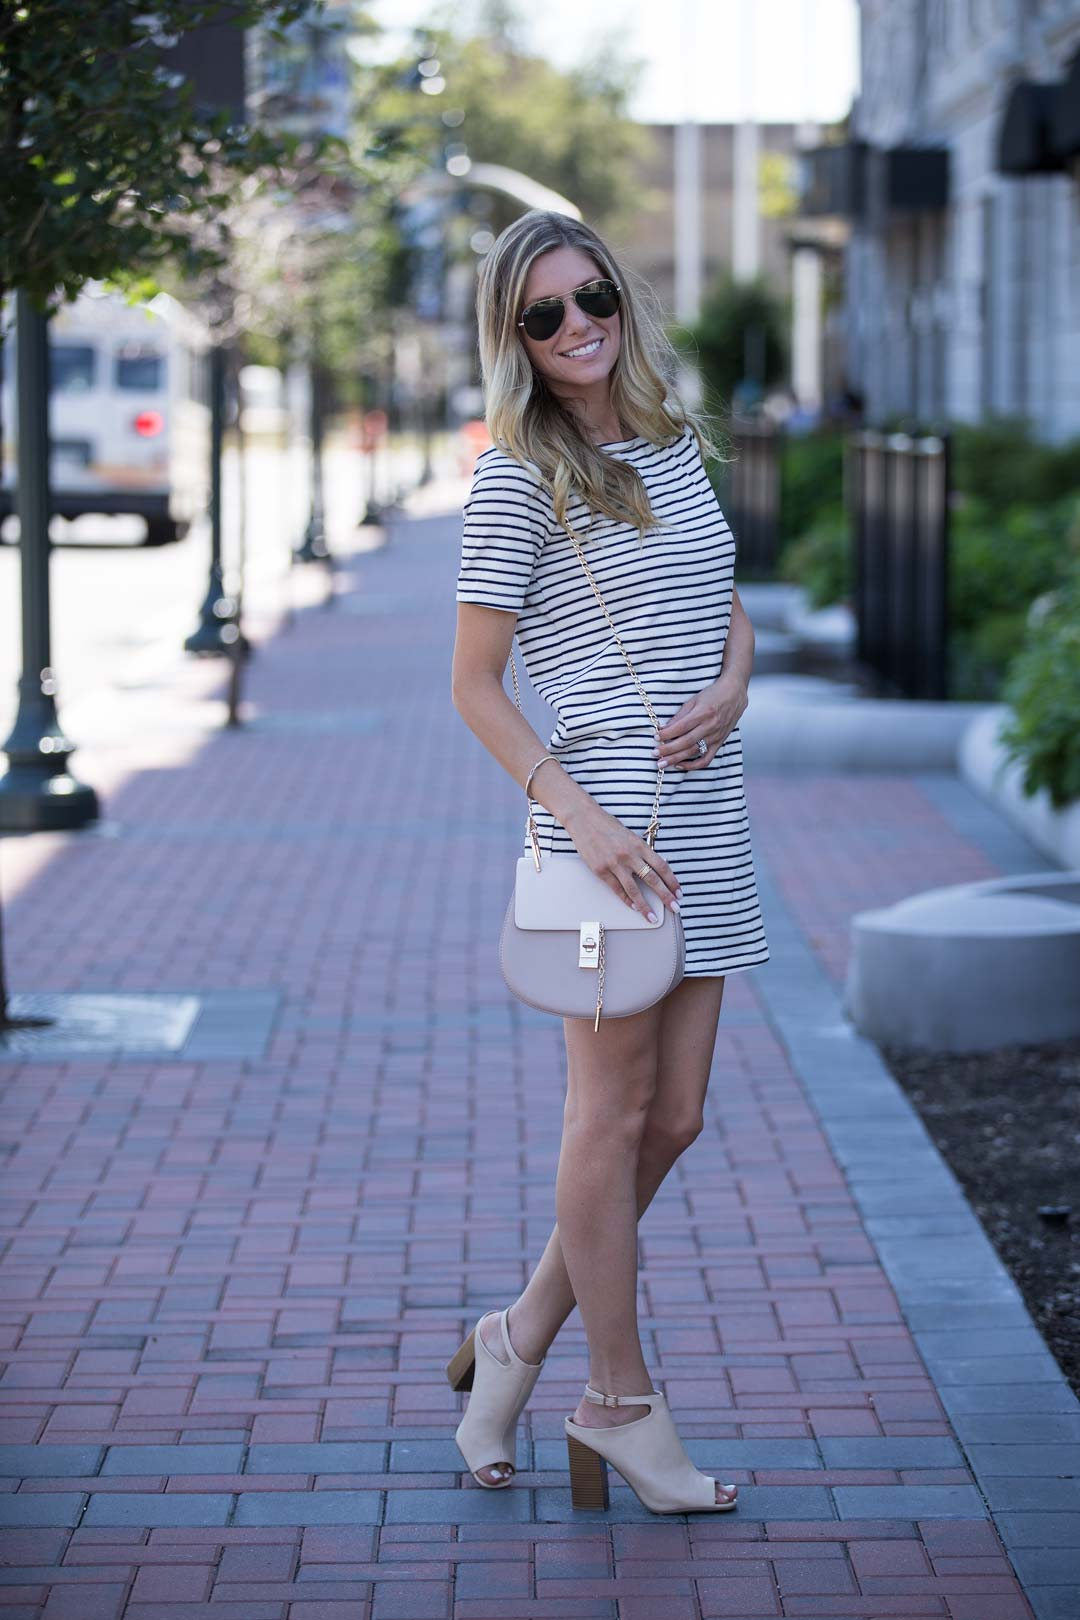 lulus shift dress and mules, chloe nano bag